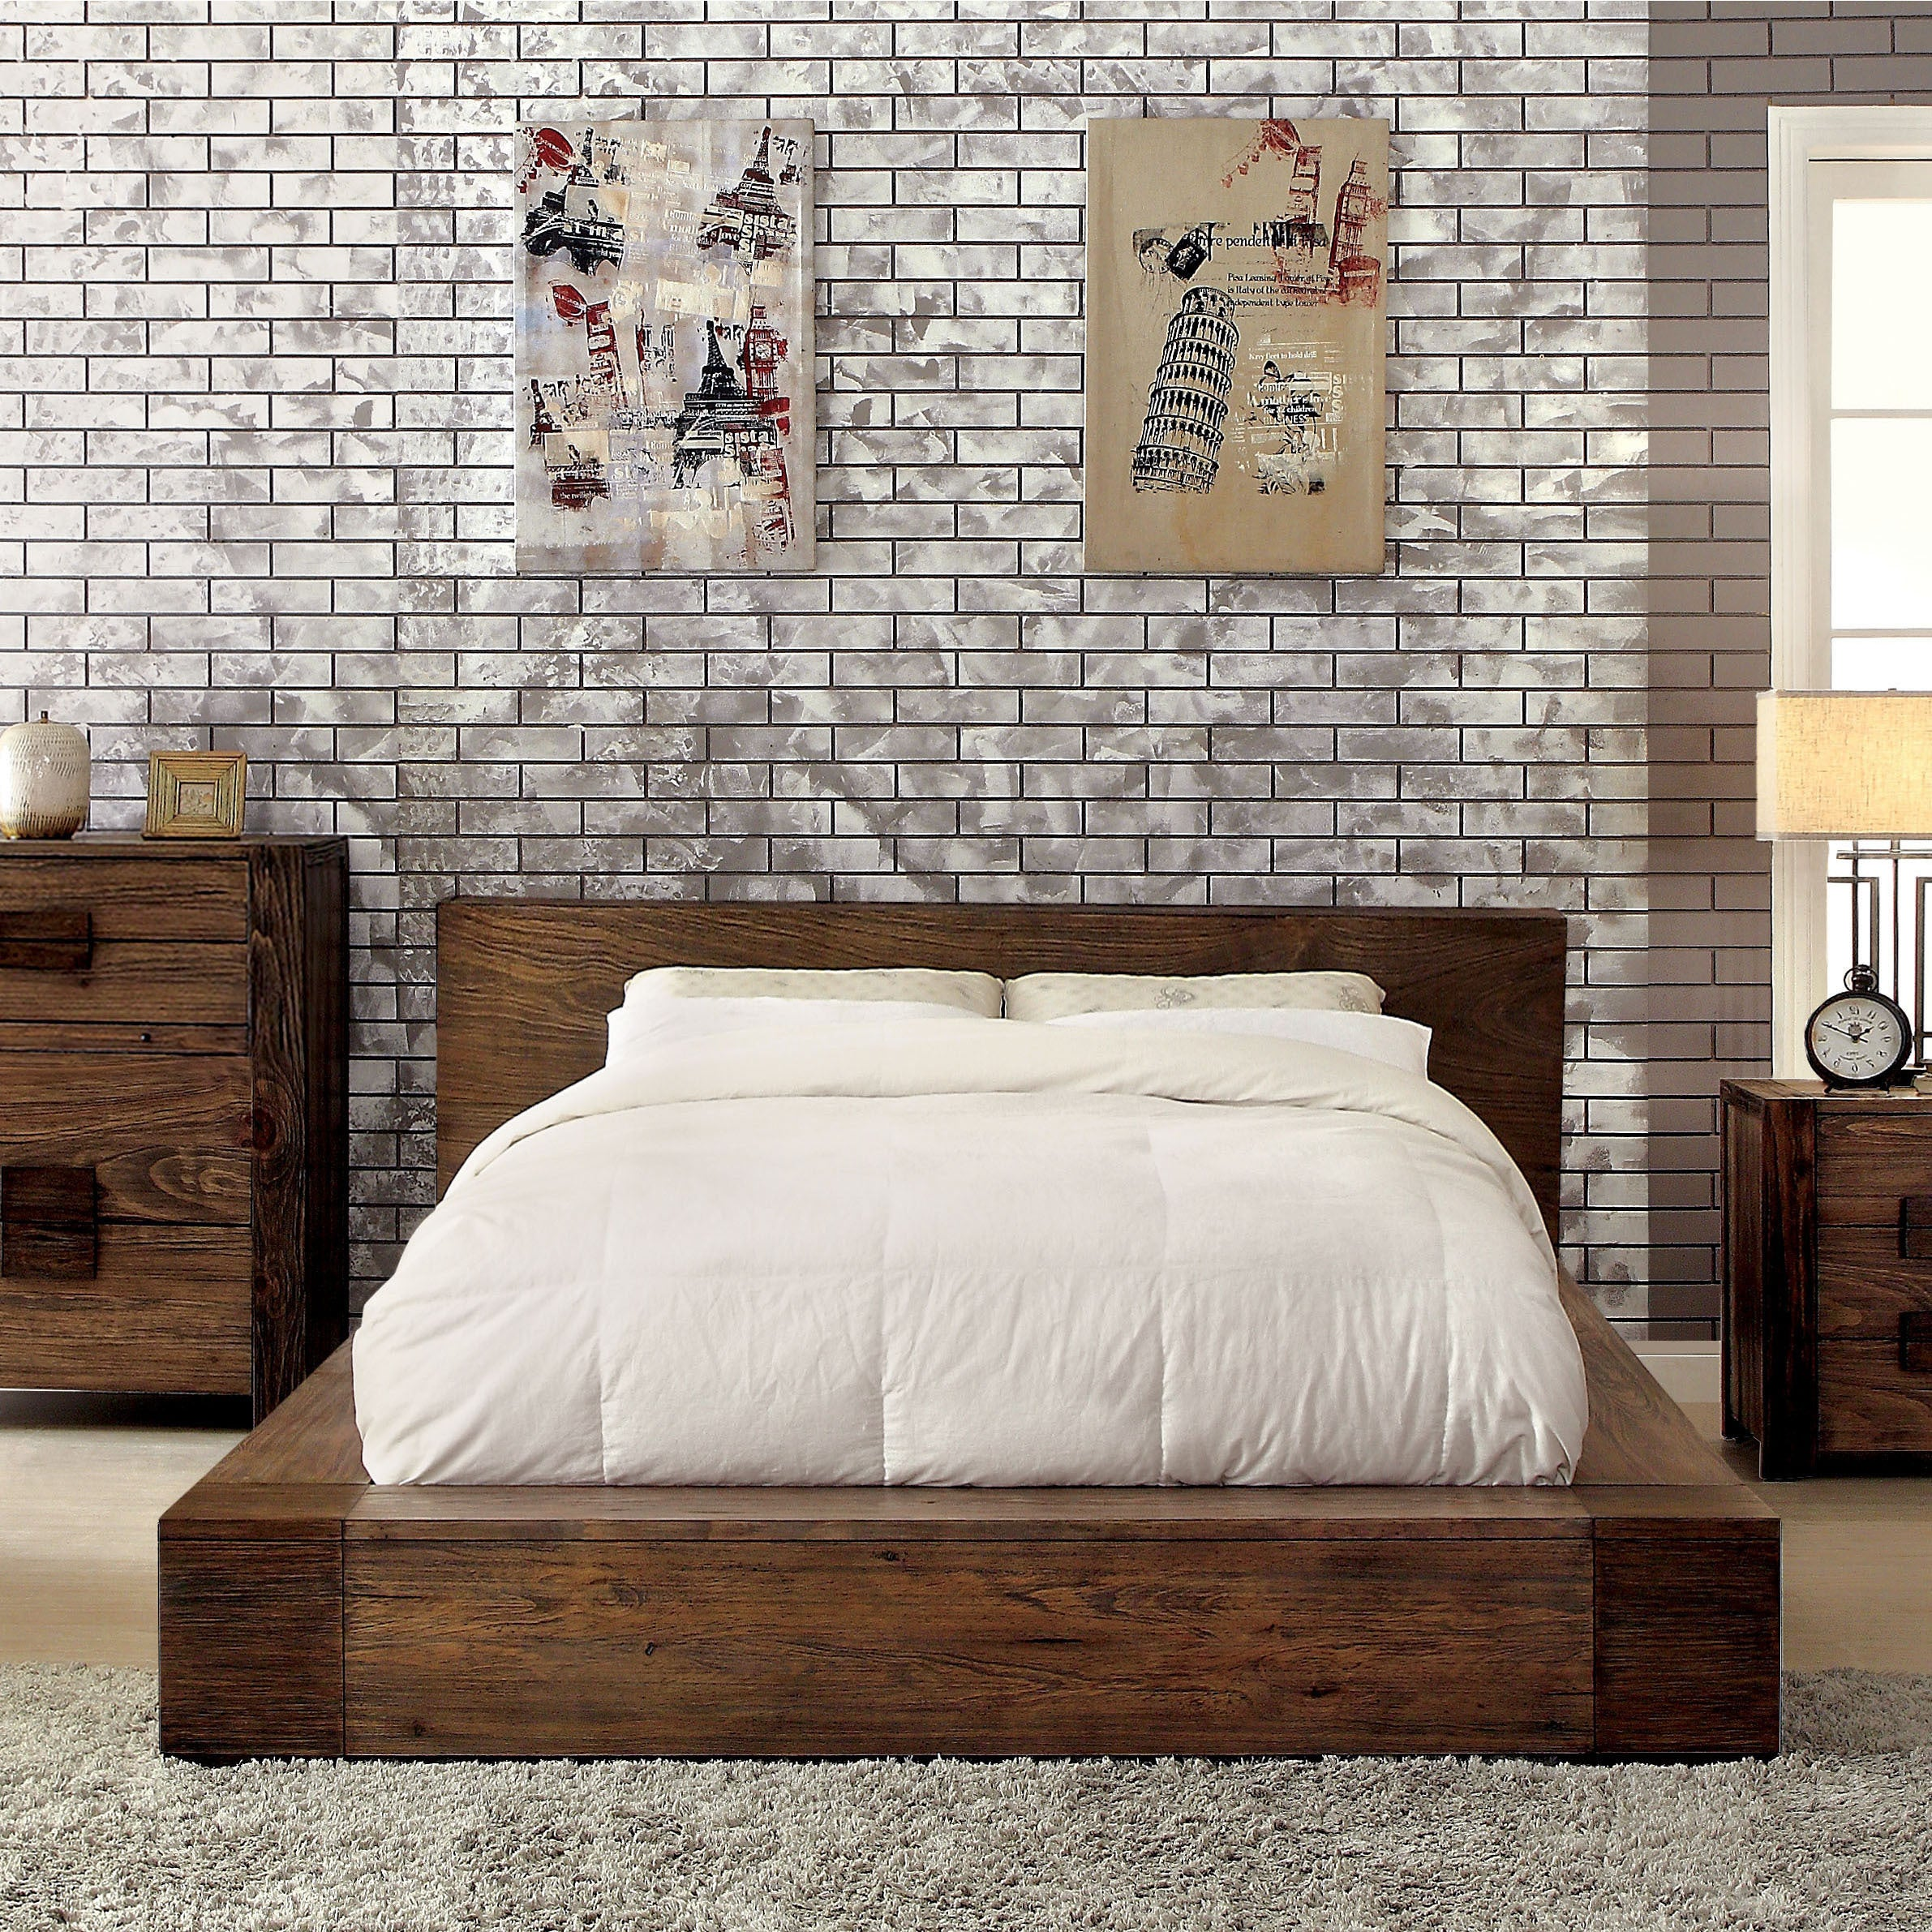 Superbe Shop Pine Canopy Kalmia 3 Piece Natural Tone Low Profile Bedroom Set   On  Sale   Free Shipping Today   Overstock.com   21906789